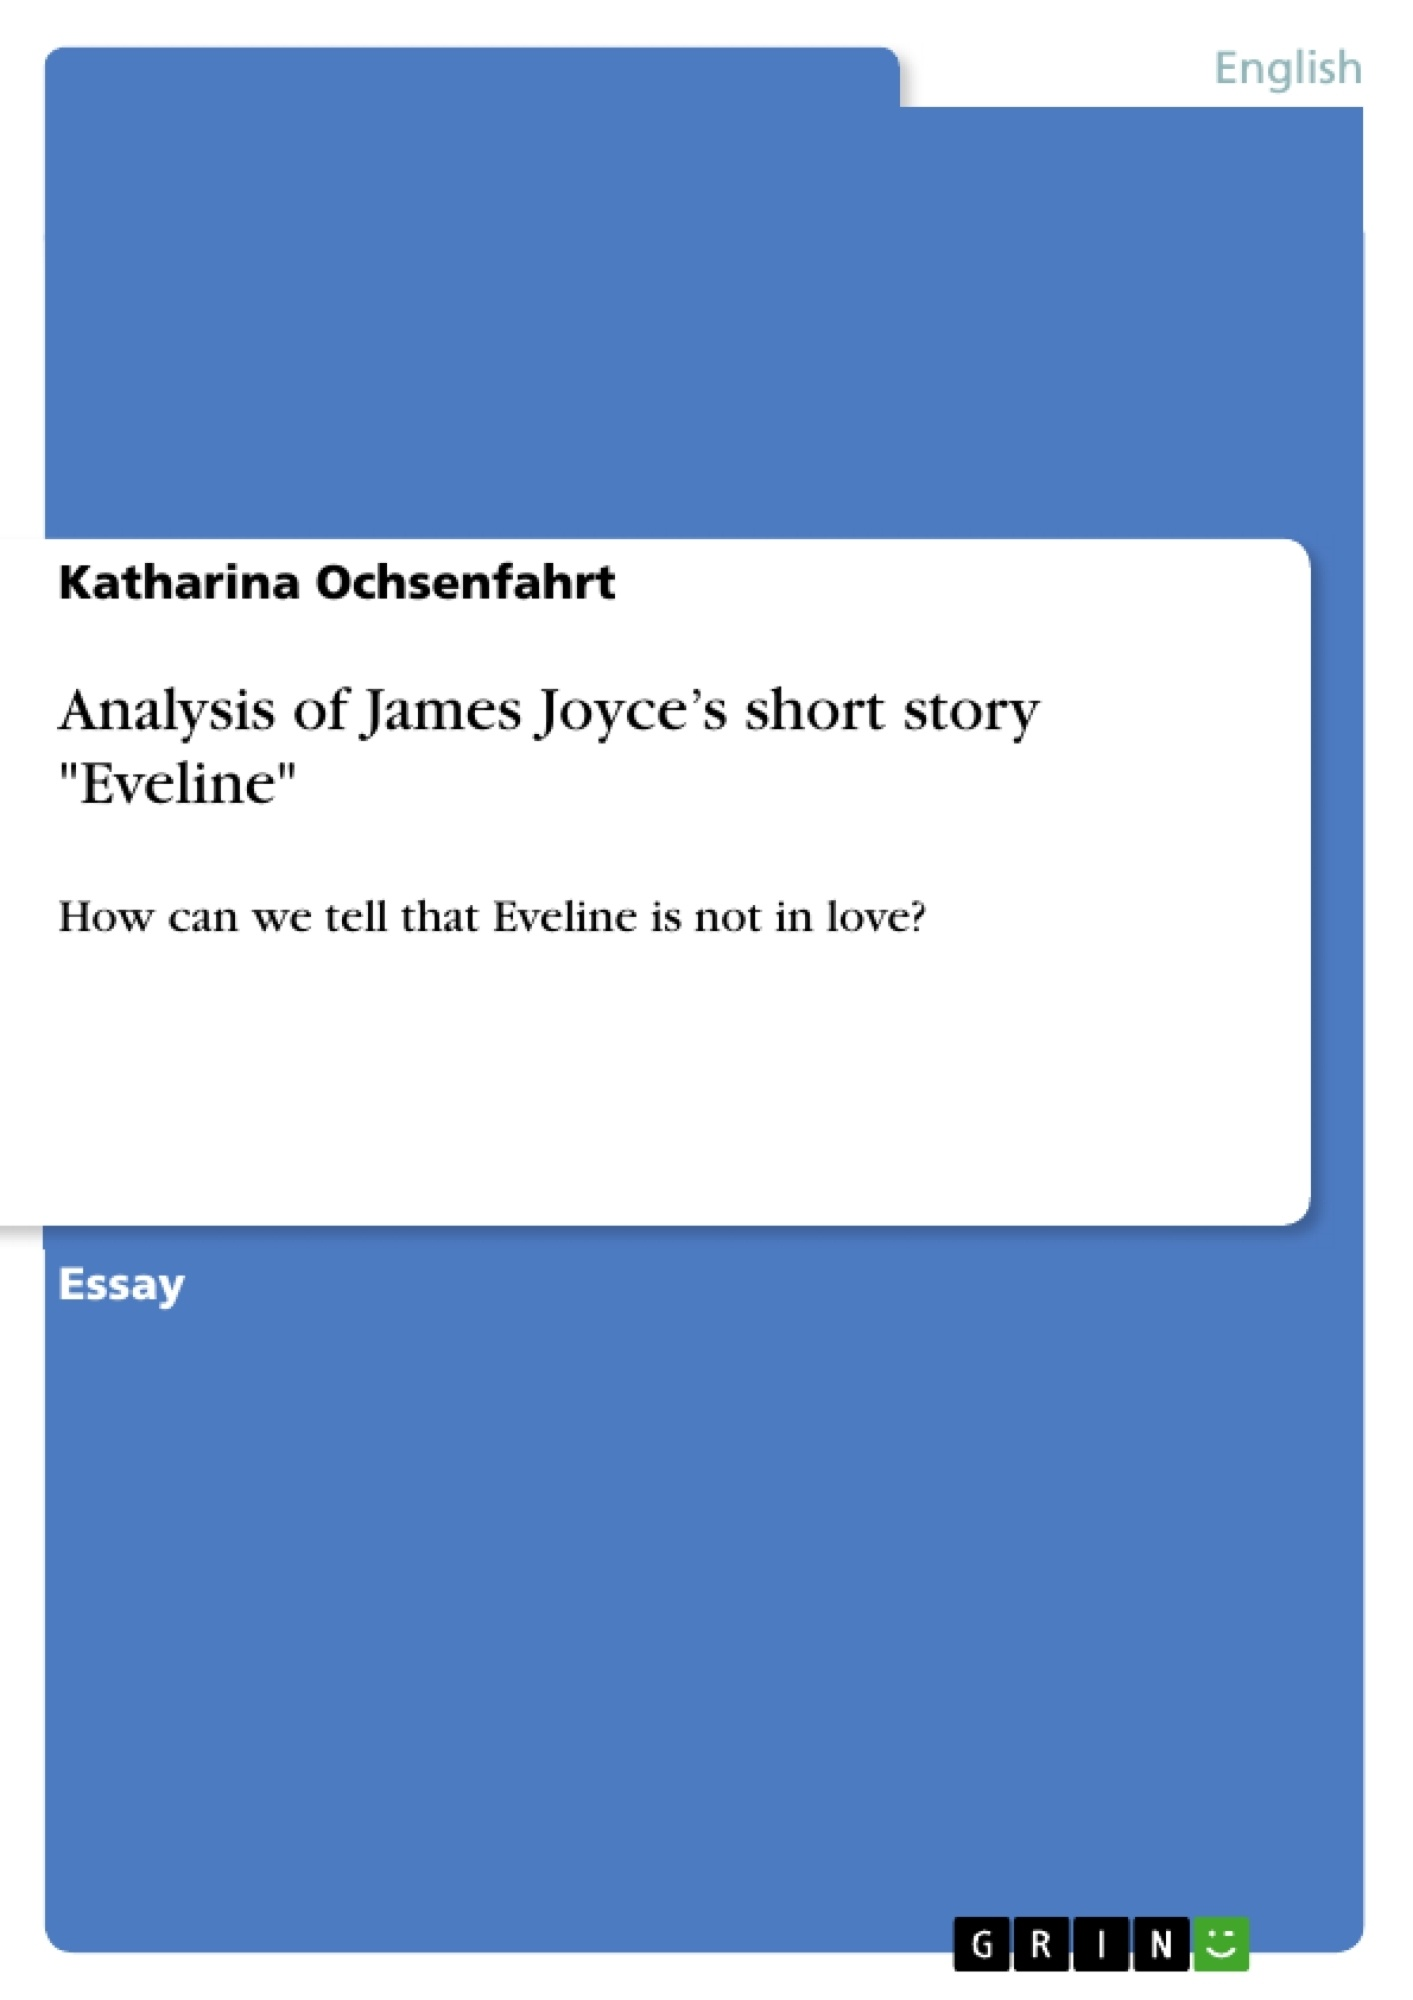 analysis of james joyce s short story eveline publish your upload your own papers earn money and win an iphone 7